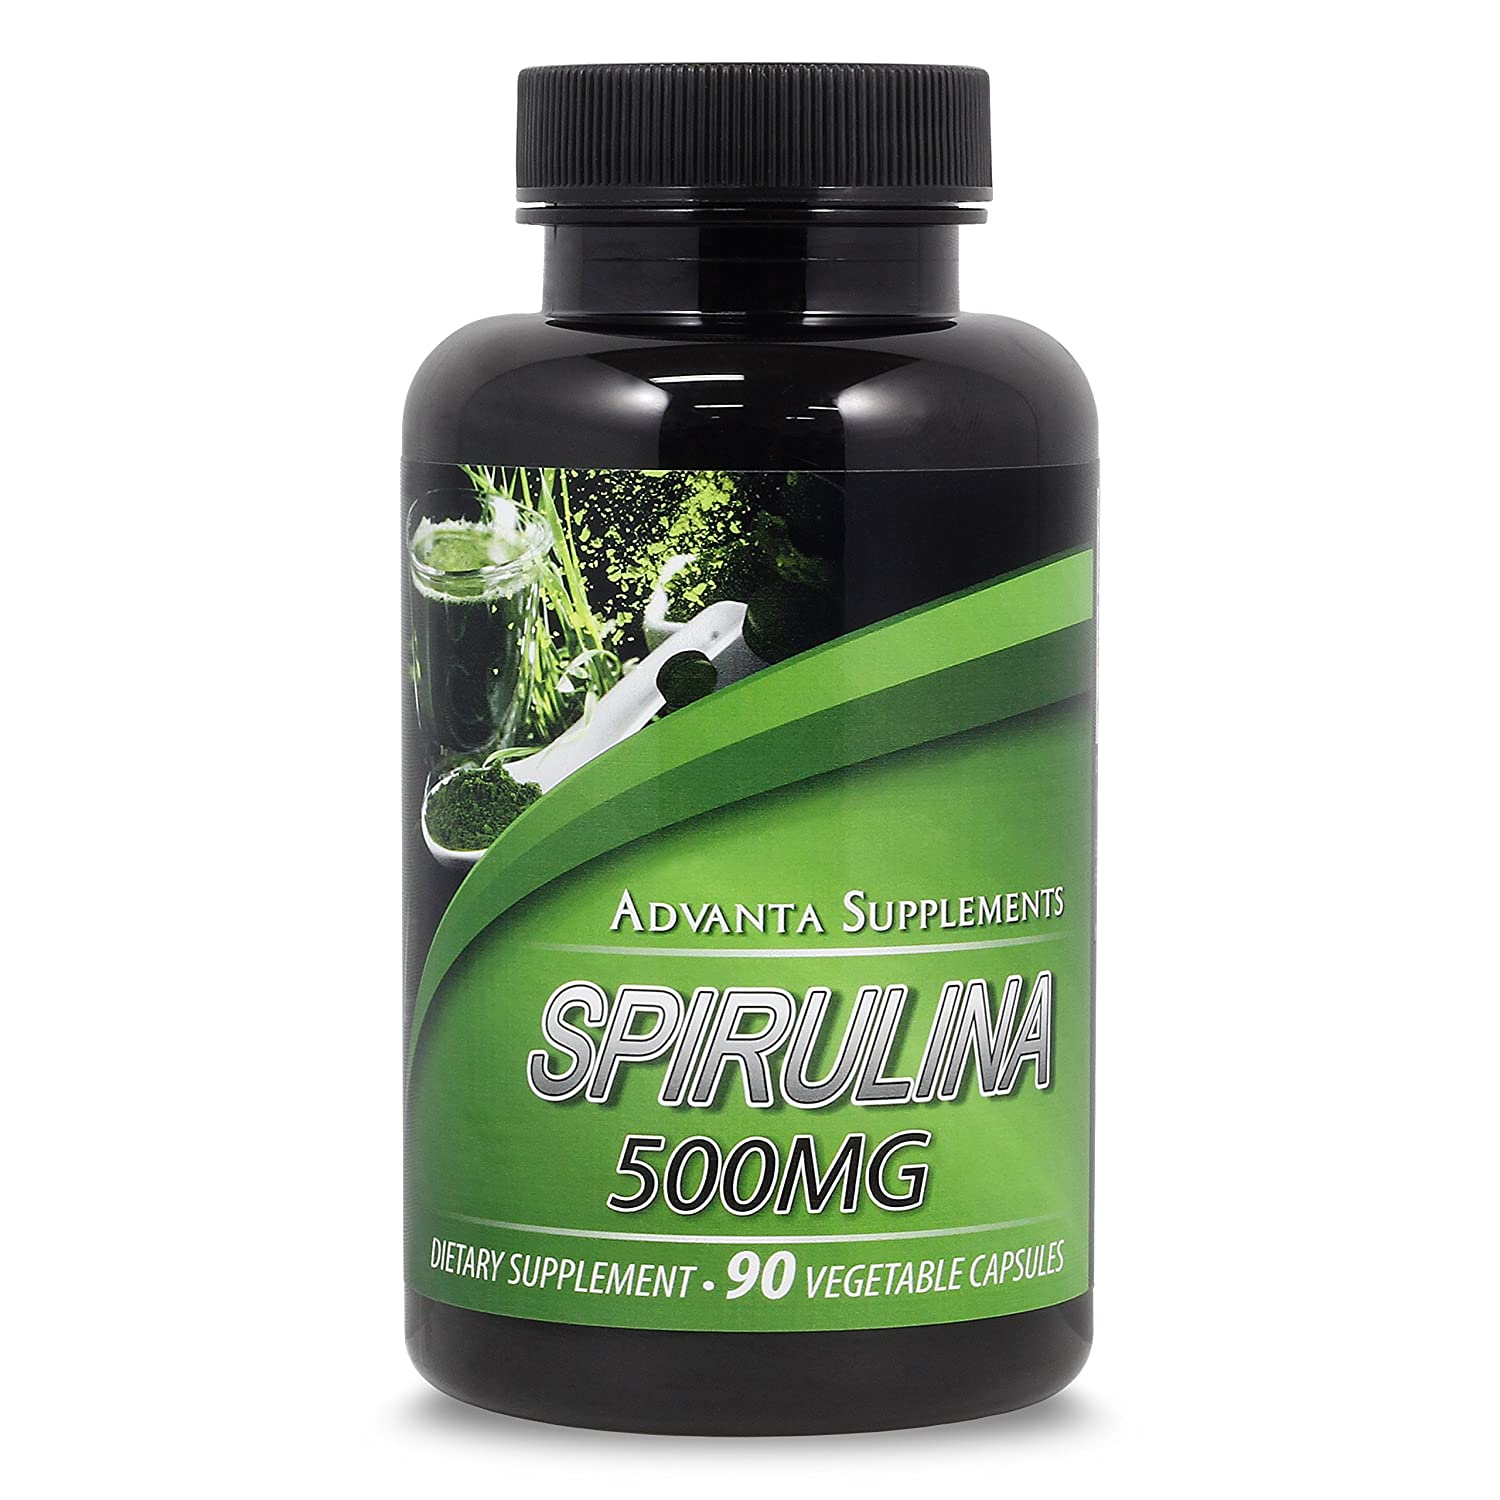 Amazon.com: Premium Spirulina Dietary Supplement 500mg By Advanta ...